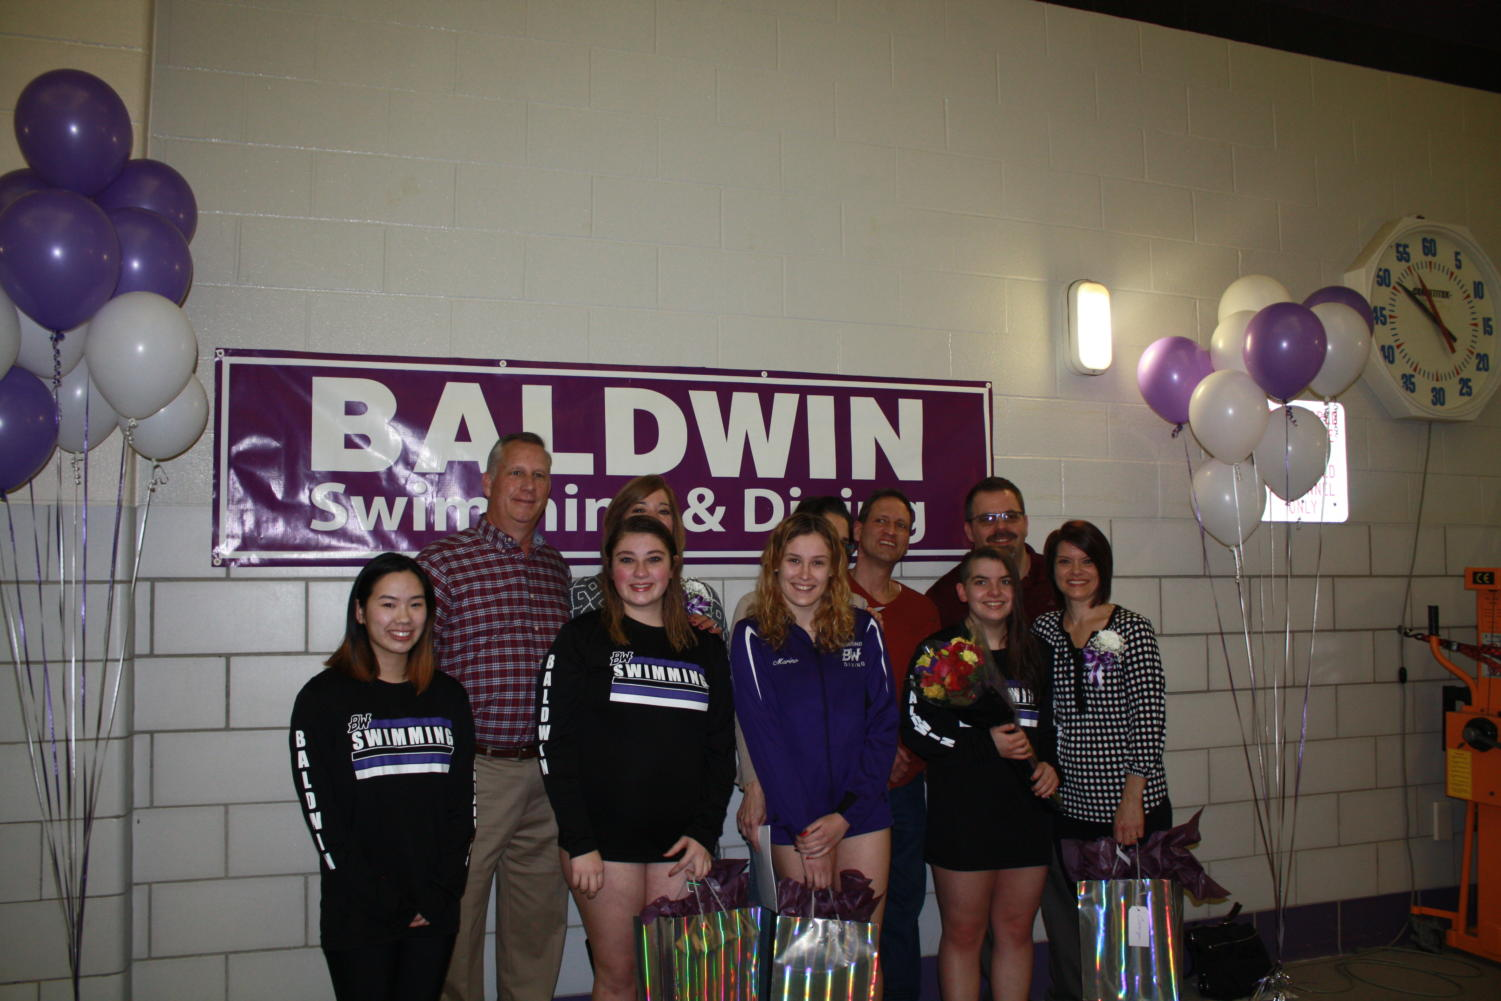 The celebrated seniors were Announcer Quinn Scharding, and swimmers Katelyn Meyers, Valerie Marino, and Camryn Beveridge.